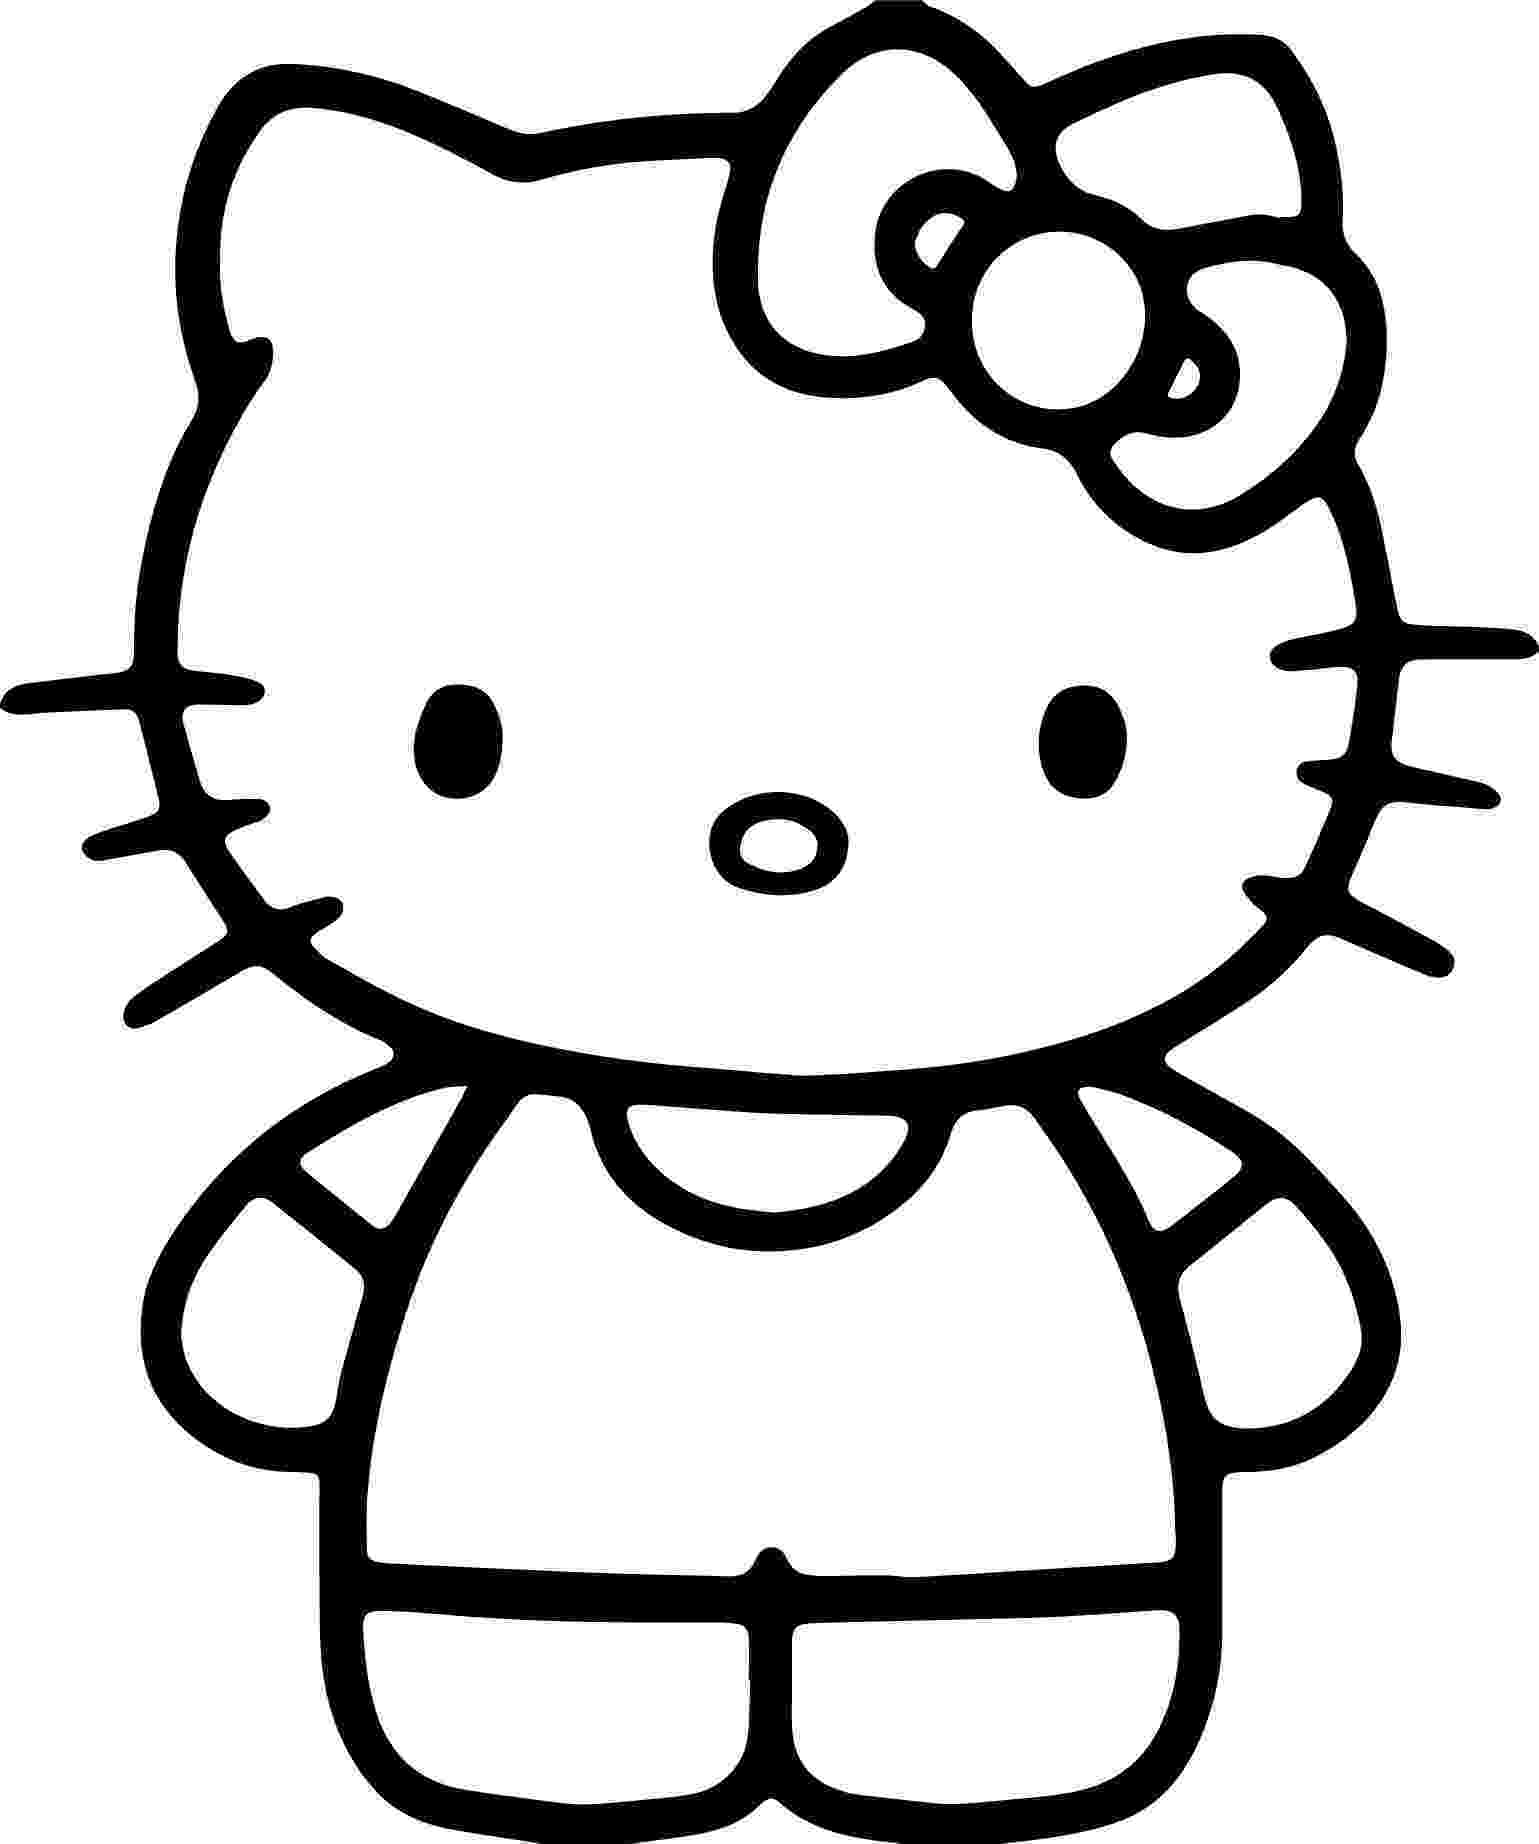 simple pictures to colour easy coloring pages printable coloring home pictures simple colour to